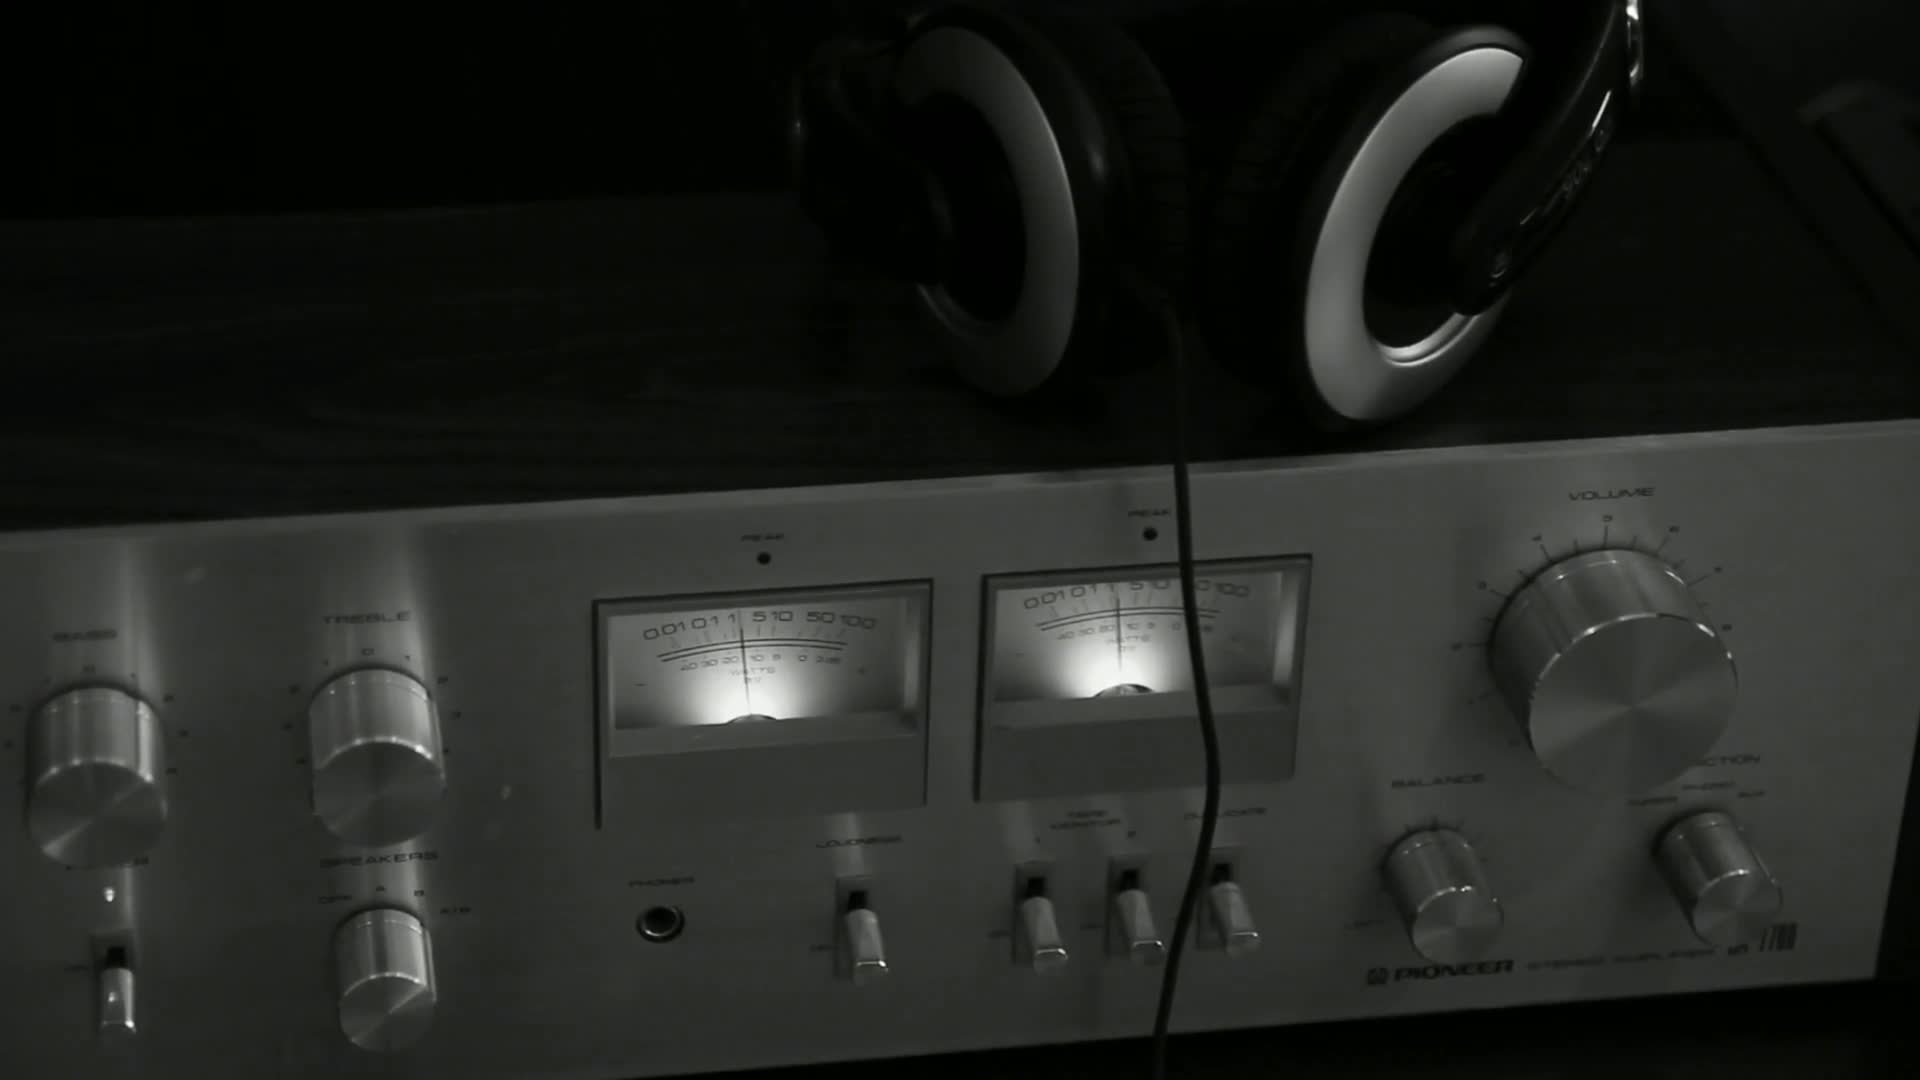 Vu meter volume gauge analog audio